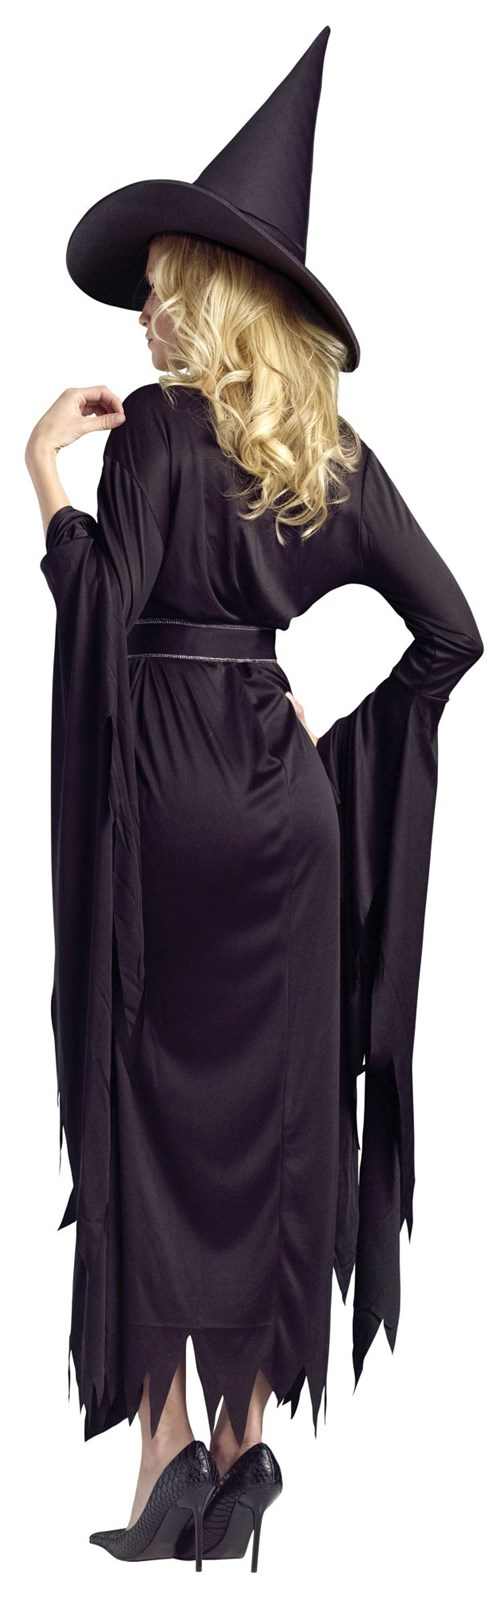 Gothic Witch Costume For Women | BuyCostumes.com